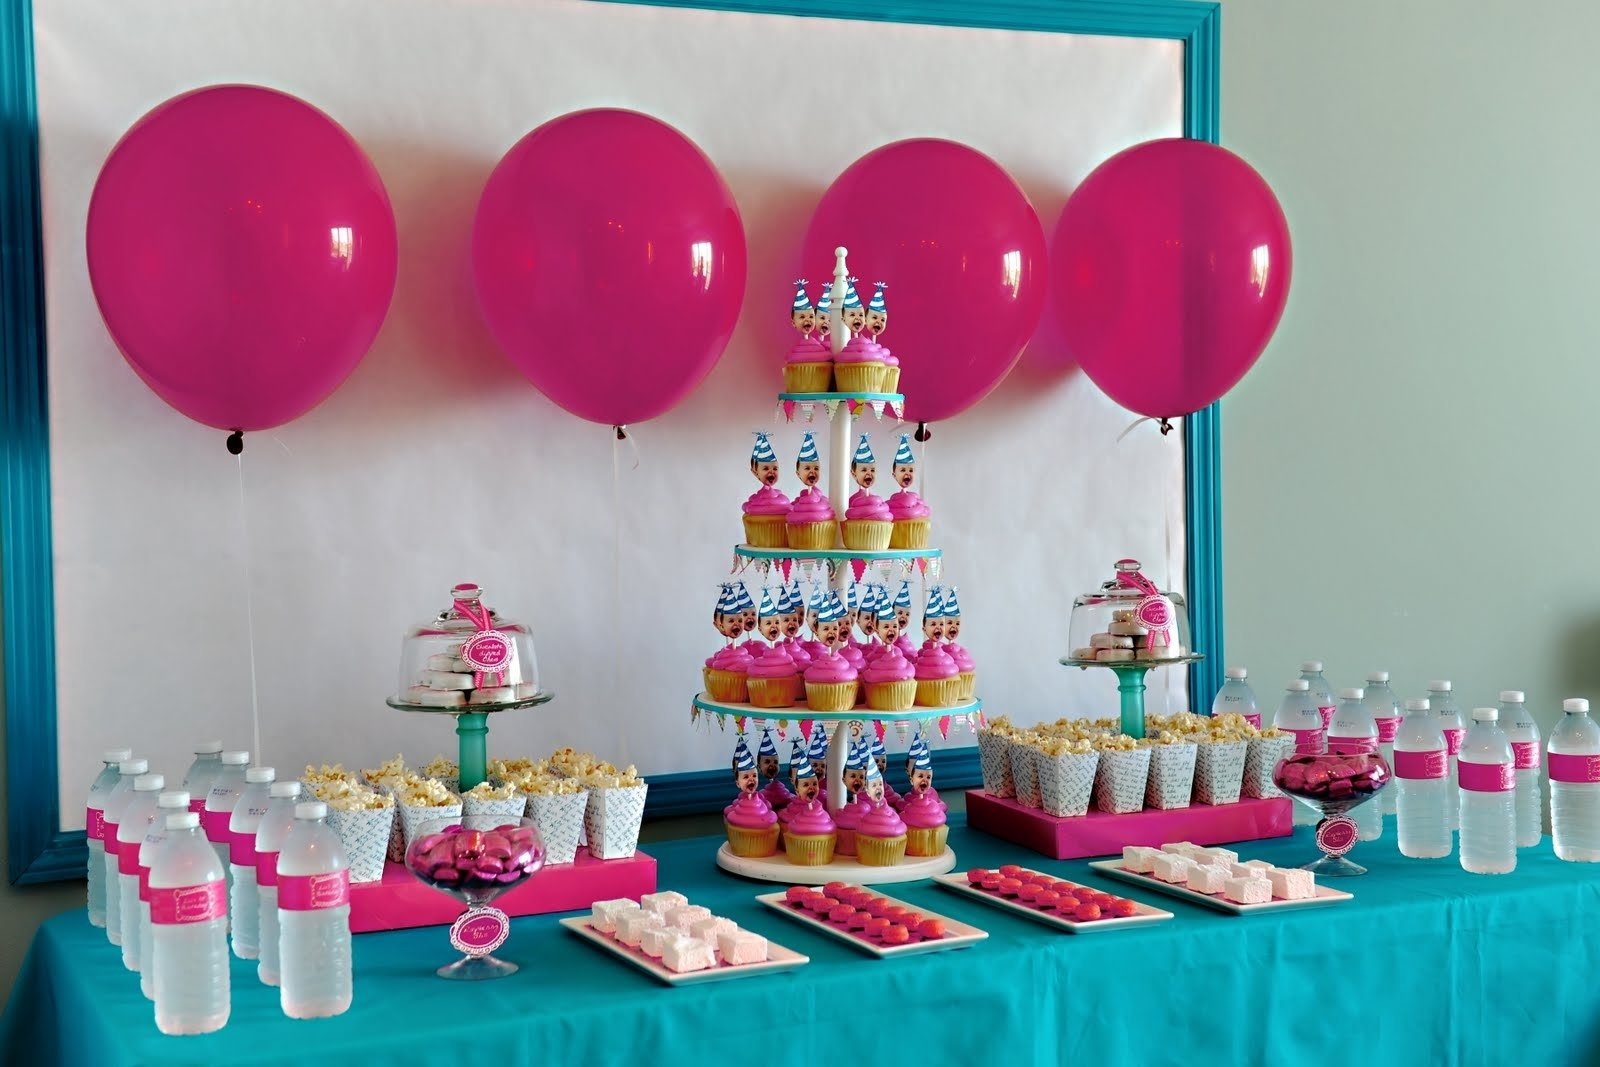 10 Spectacular Birthday Party Ideas For 10 Year Old Girl 10 year old birthday party ideas teenage birthday party ideas 2 2020